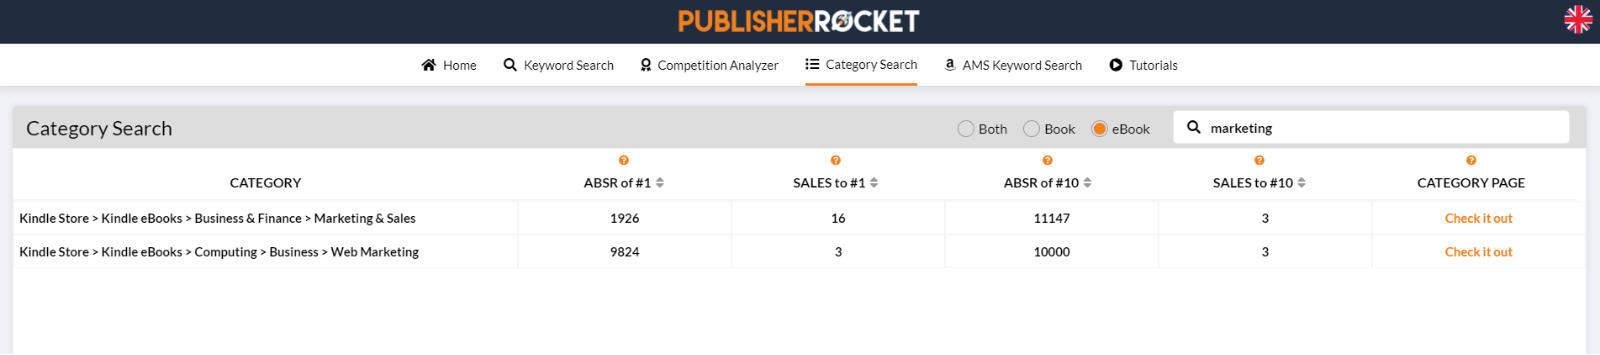 publisher-rocket-review-2